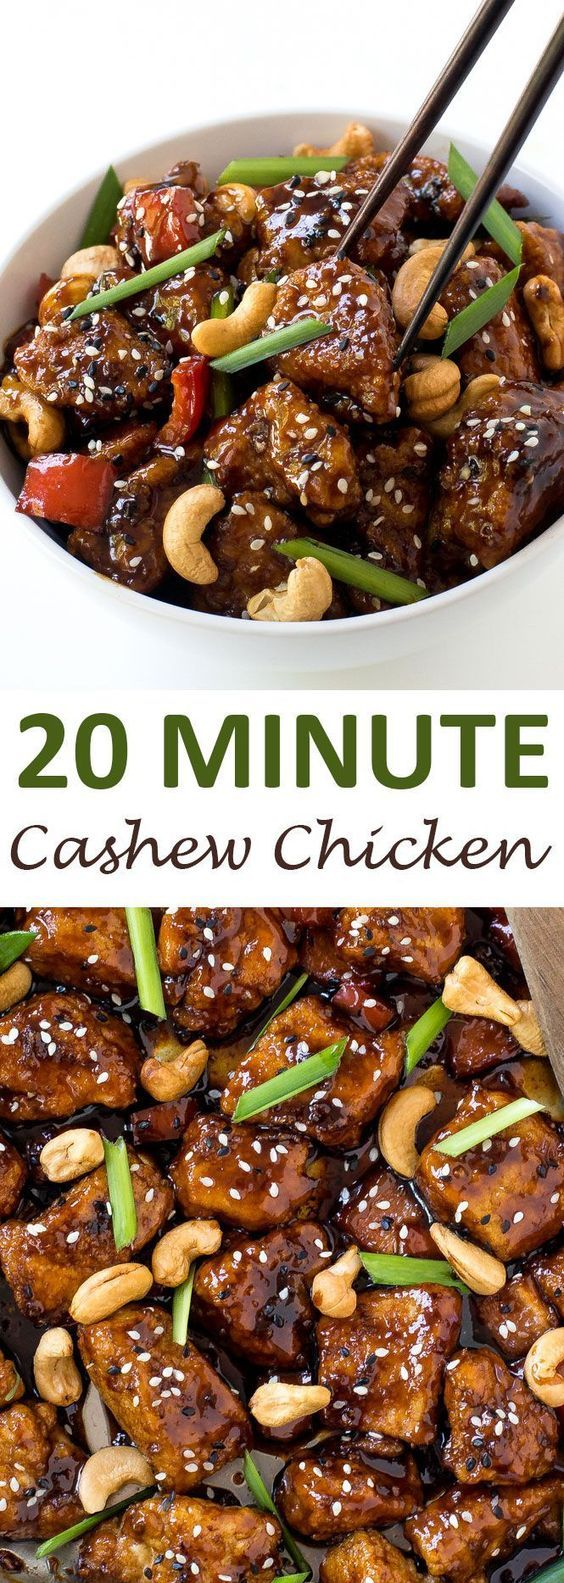 Super Easy 20 Minute Cashew Chicken. A quick and easy meal for busy weeknights…